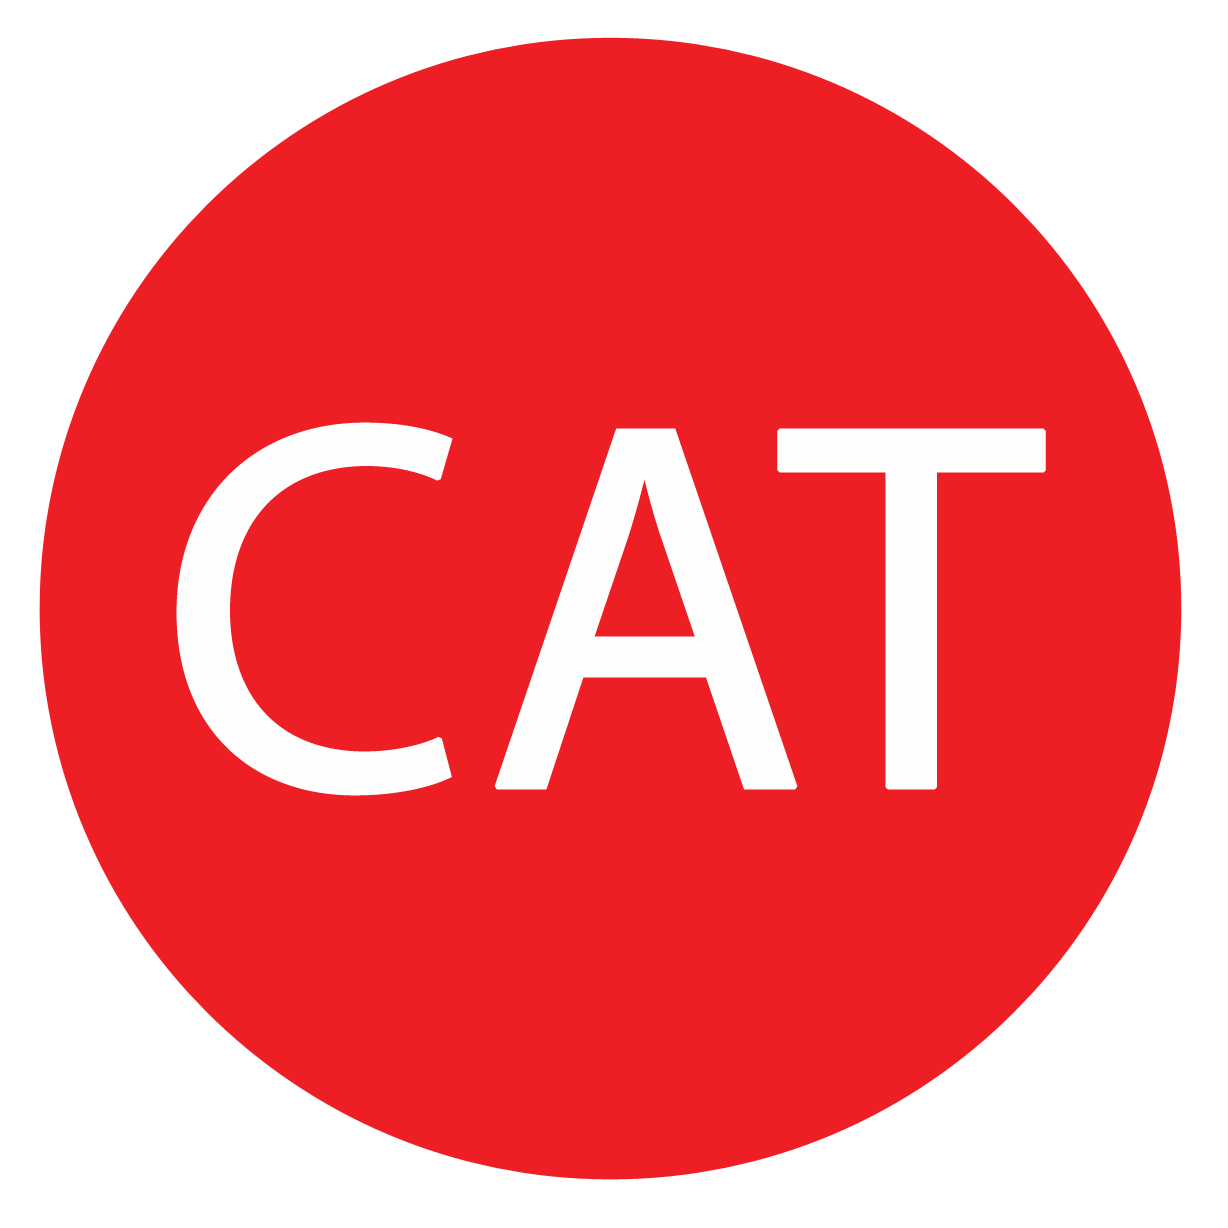 CAT Technology Inc